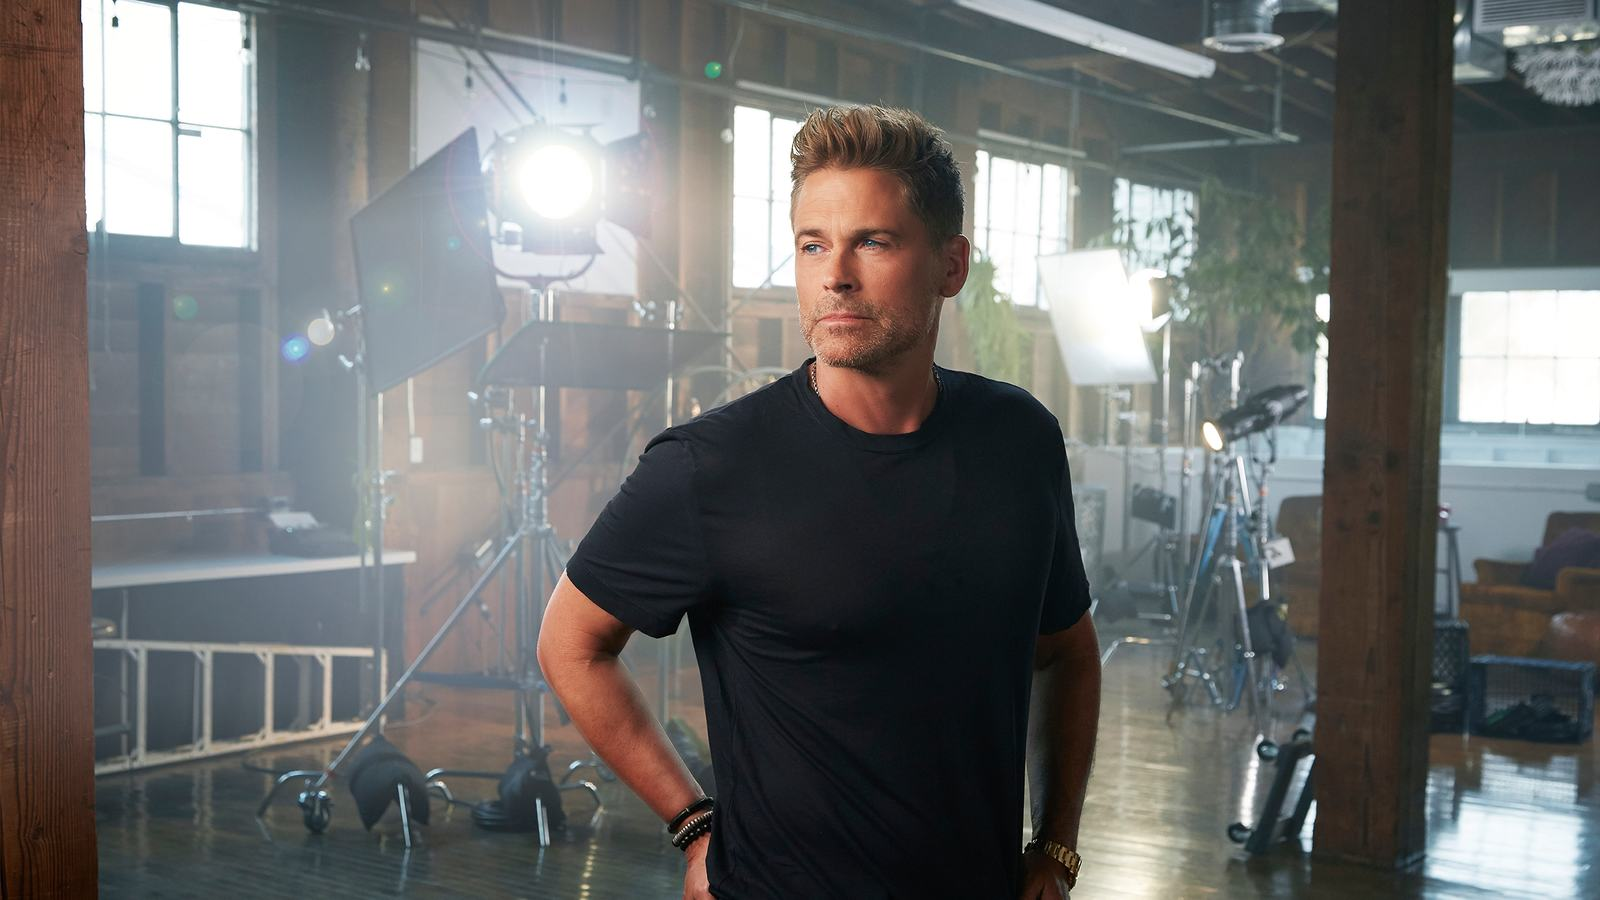 Rob Lowe, actor